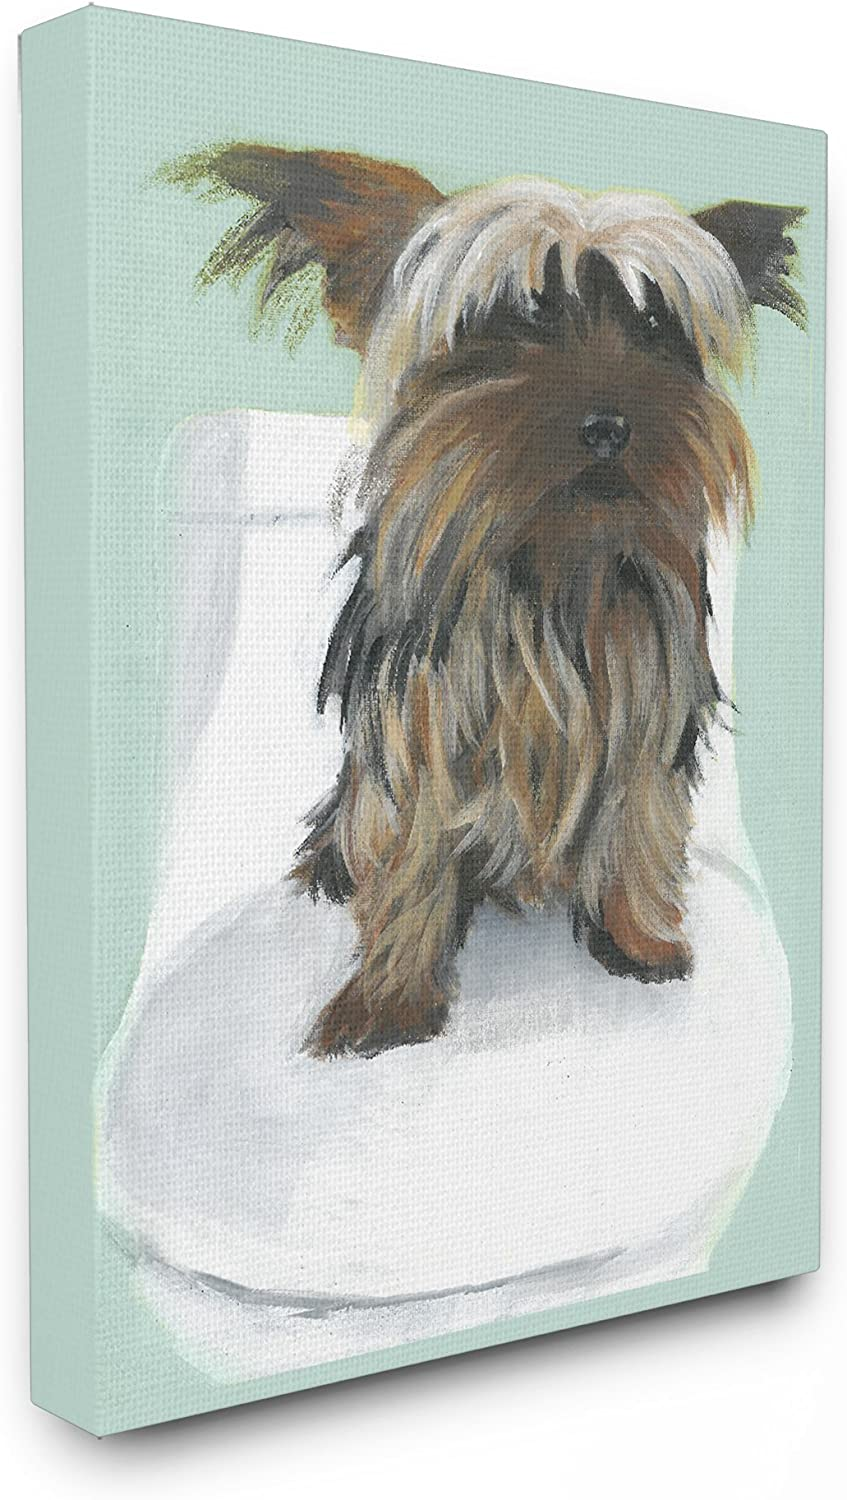 The Stupell Home Decor Collection Yorkie in The Bathroom Illustration